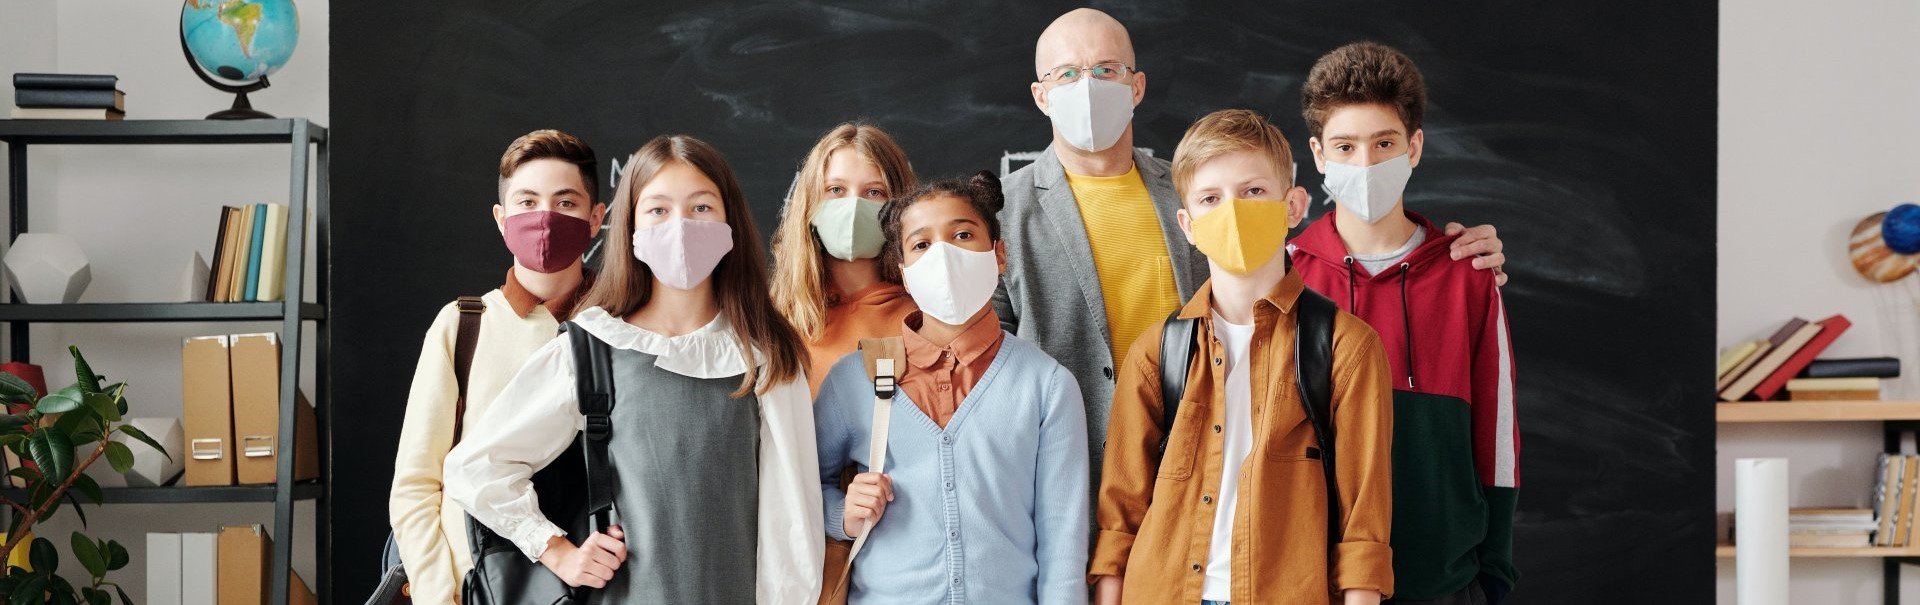 A practical guide to clean air inside the school gates